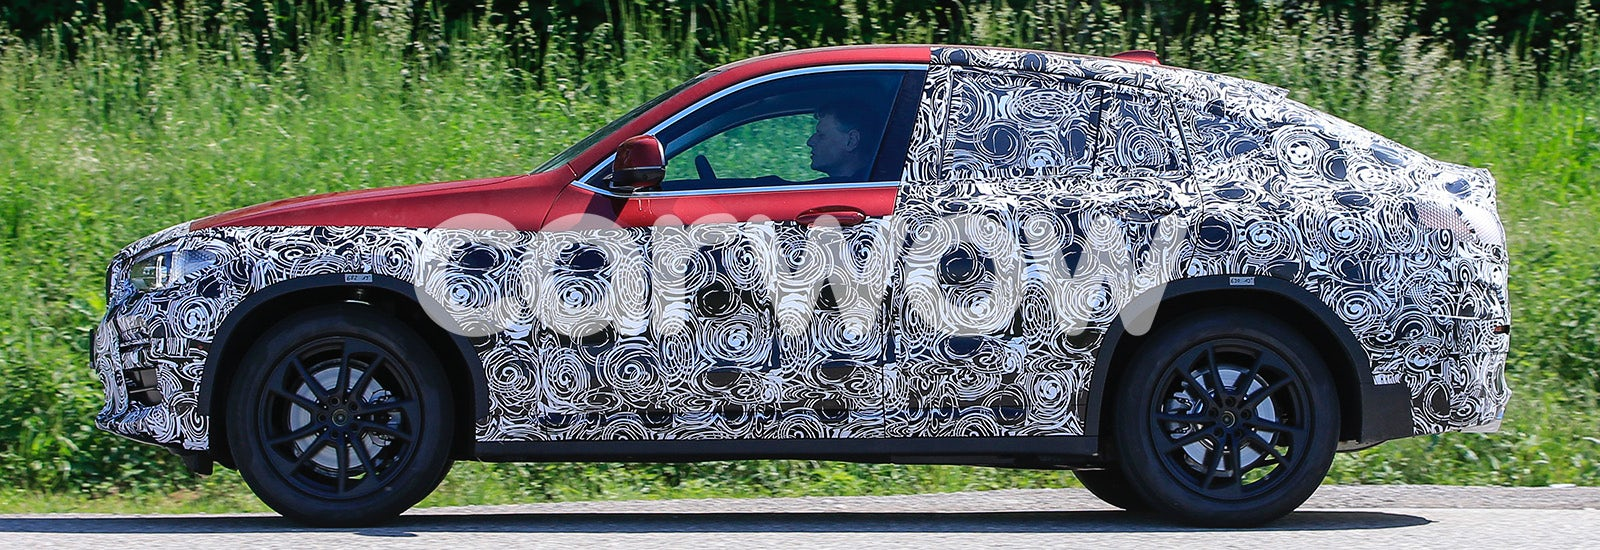 New bmw 8 series price specs release date carwow - 2018 Bmw X4 Engines